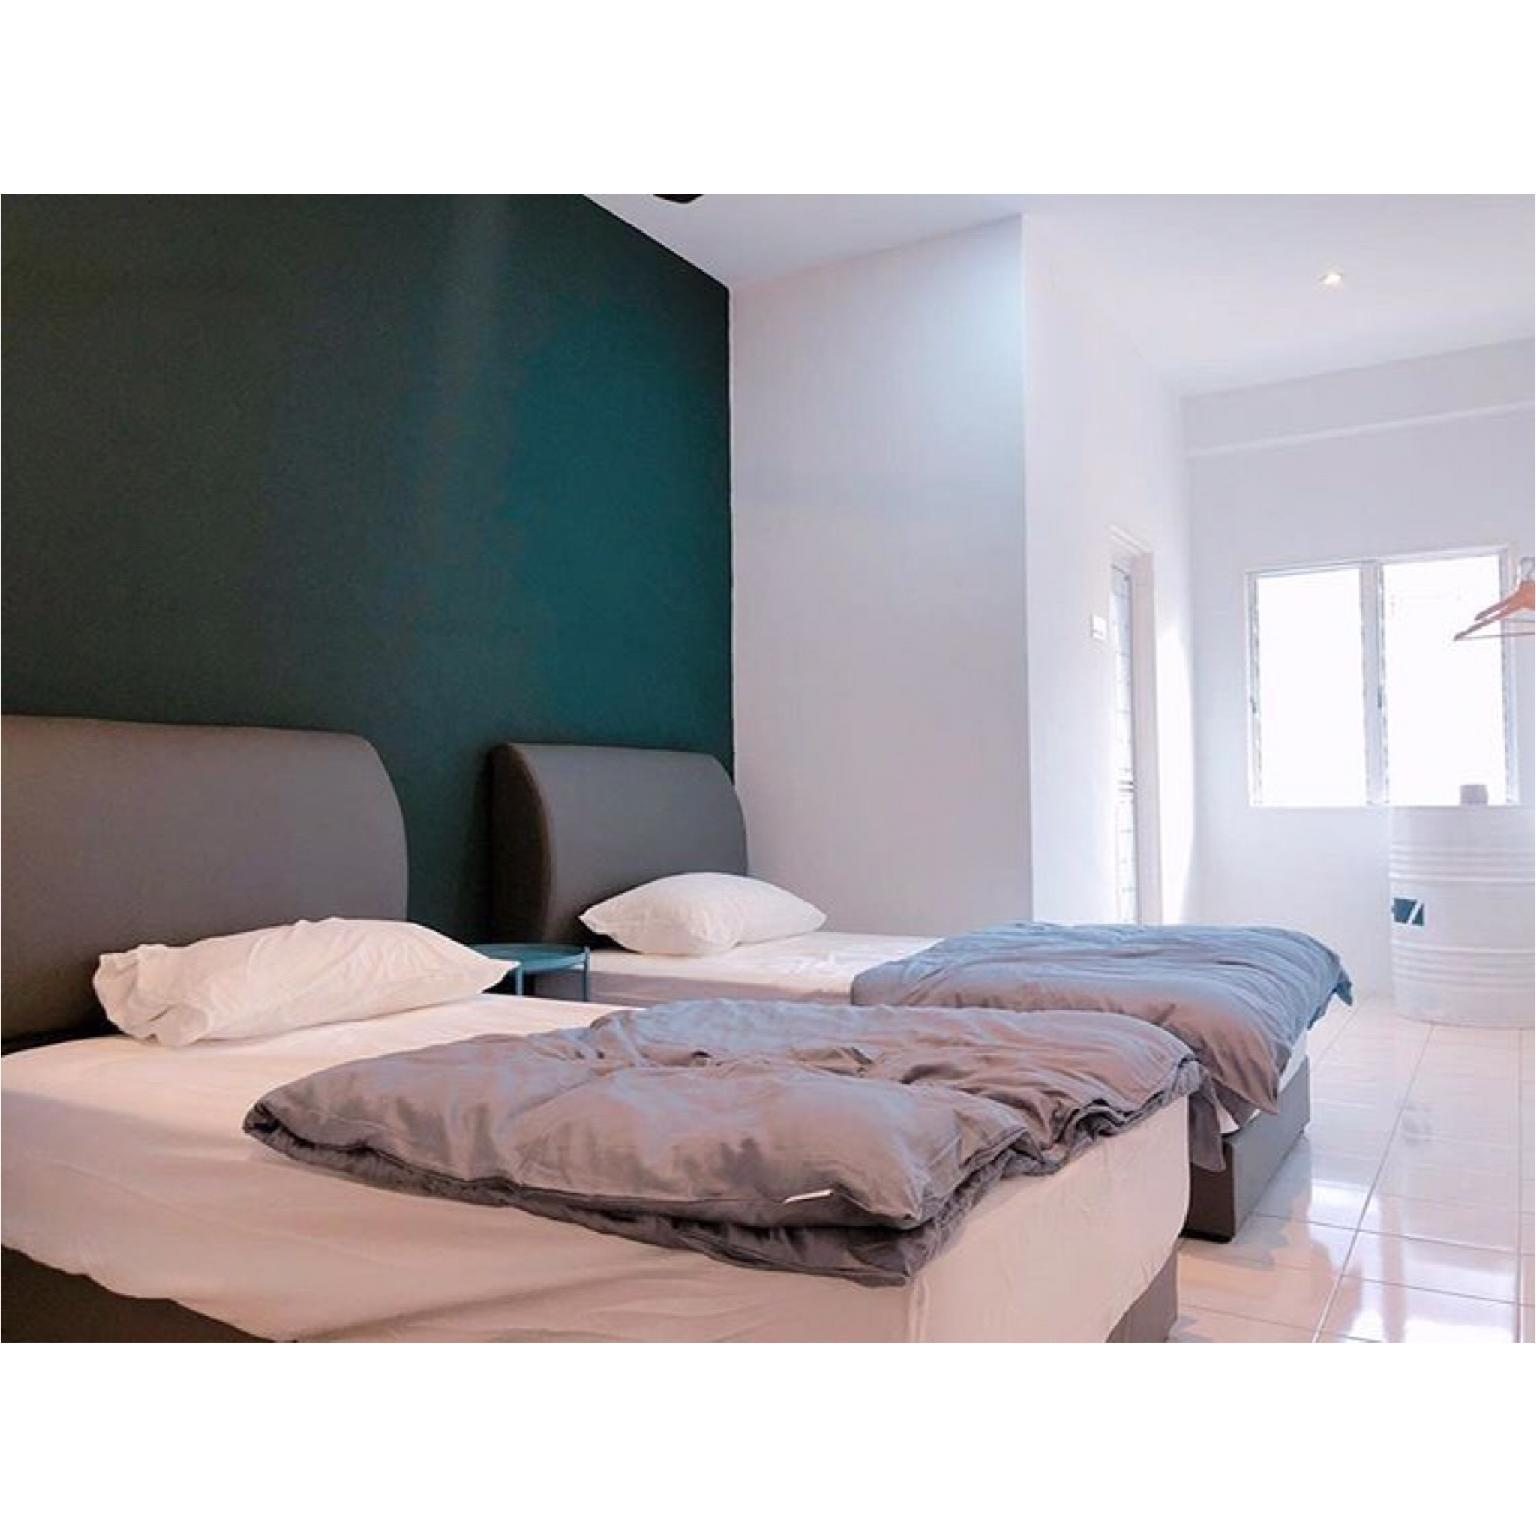 22 Haus  Twin Bed For 2 With Share Bathroom